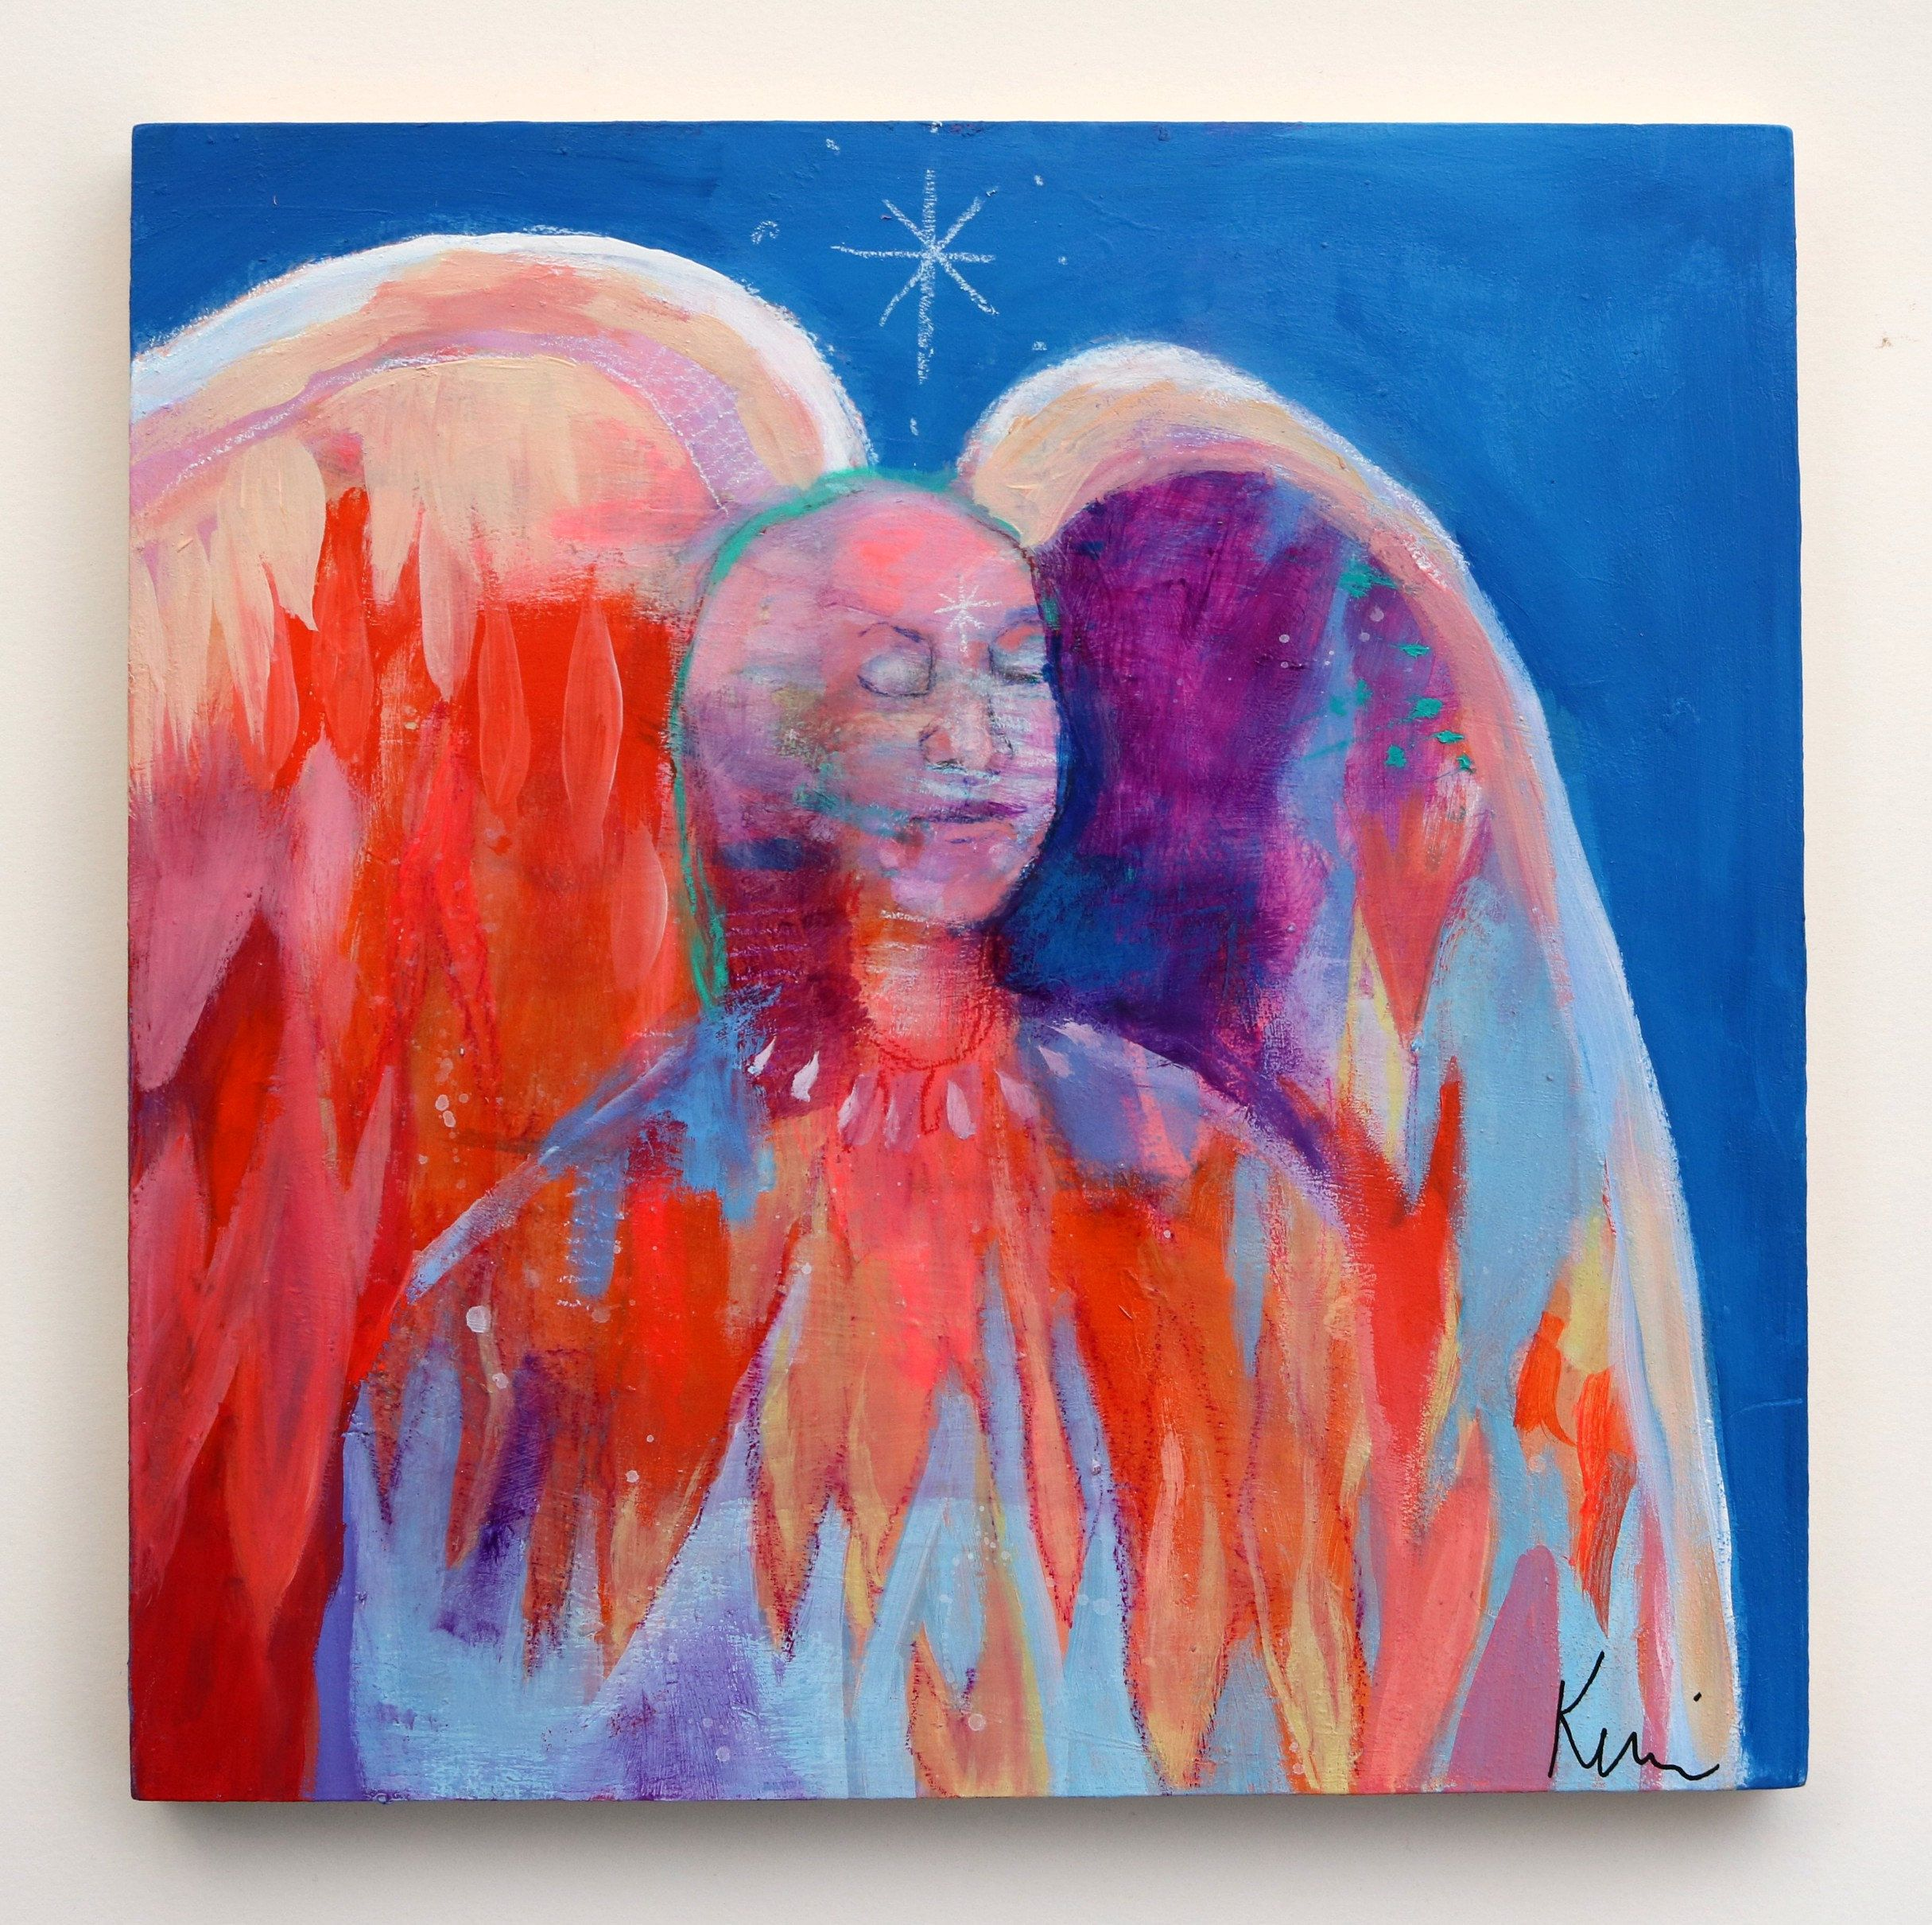 Small Abstract Angel Figure Painting Spiritual Colorful Modern Original Artwork Just Be 12x12 By Kerri M In 2020 Etsy Handmade Figure Painting Alcohol Ink Painting